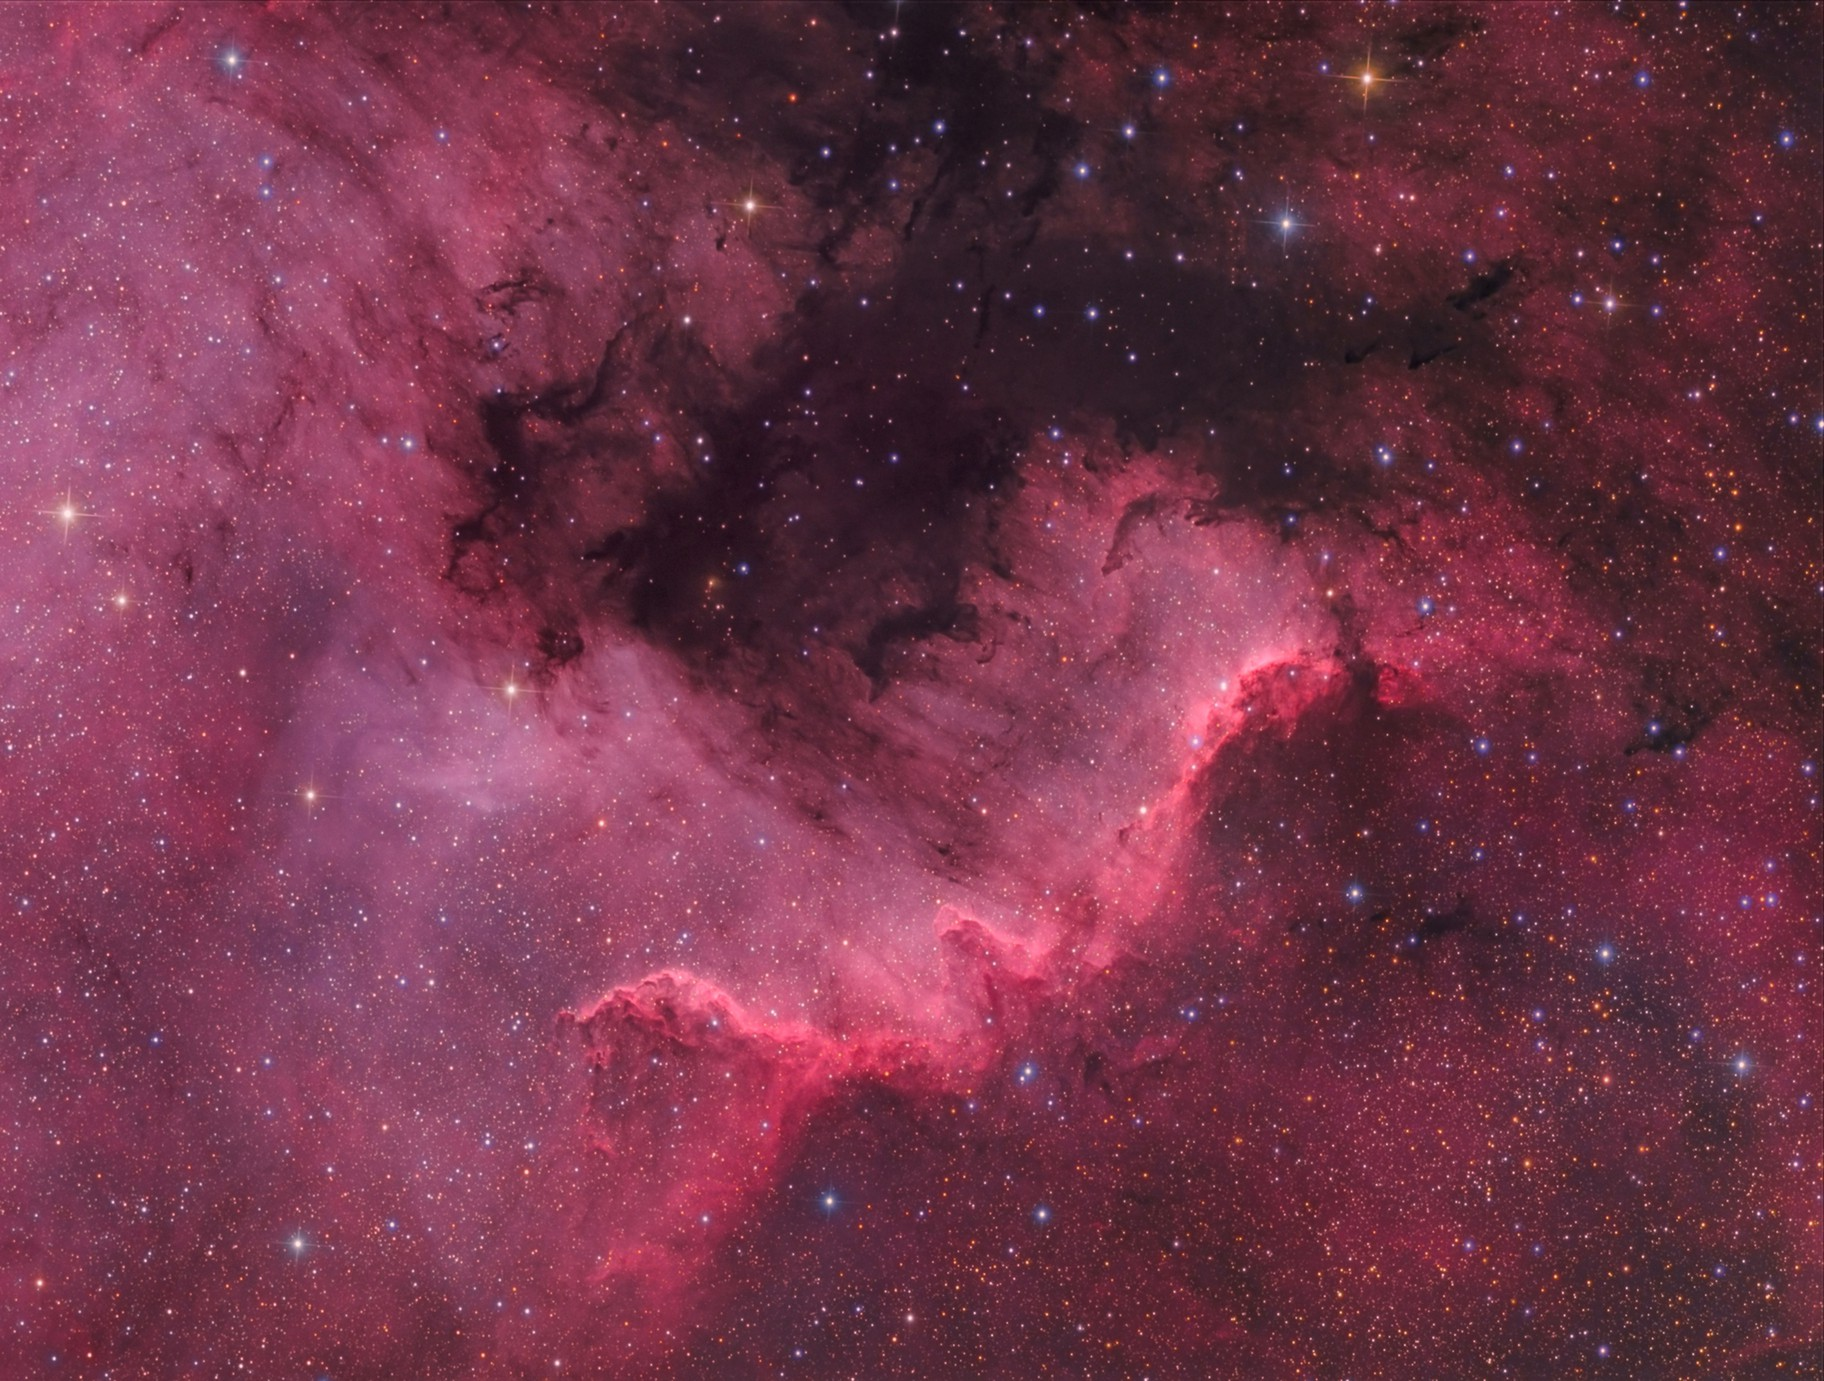 NGC 7000 - The Great Wall